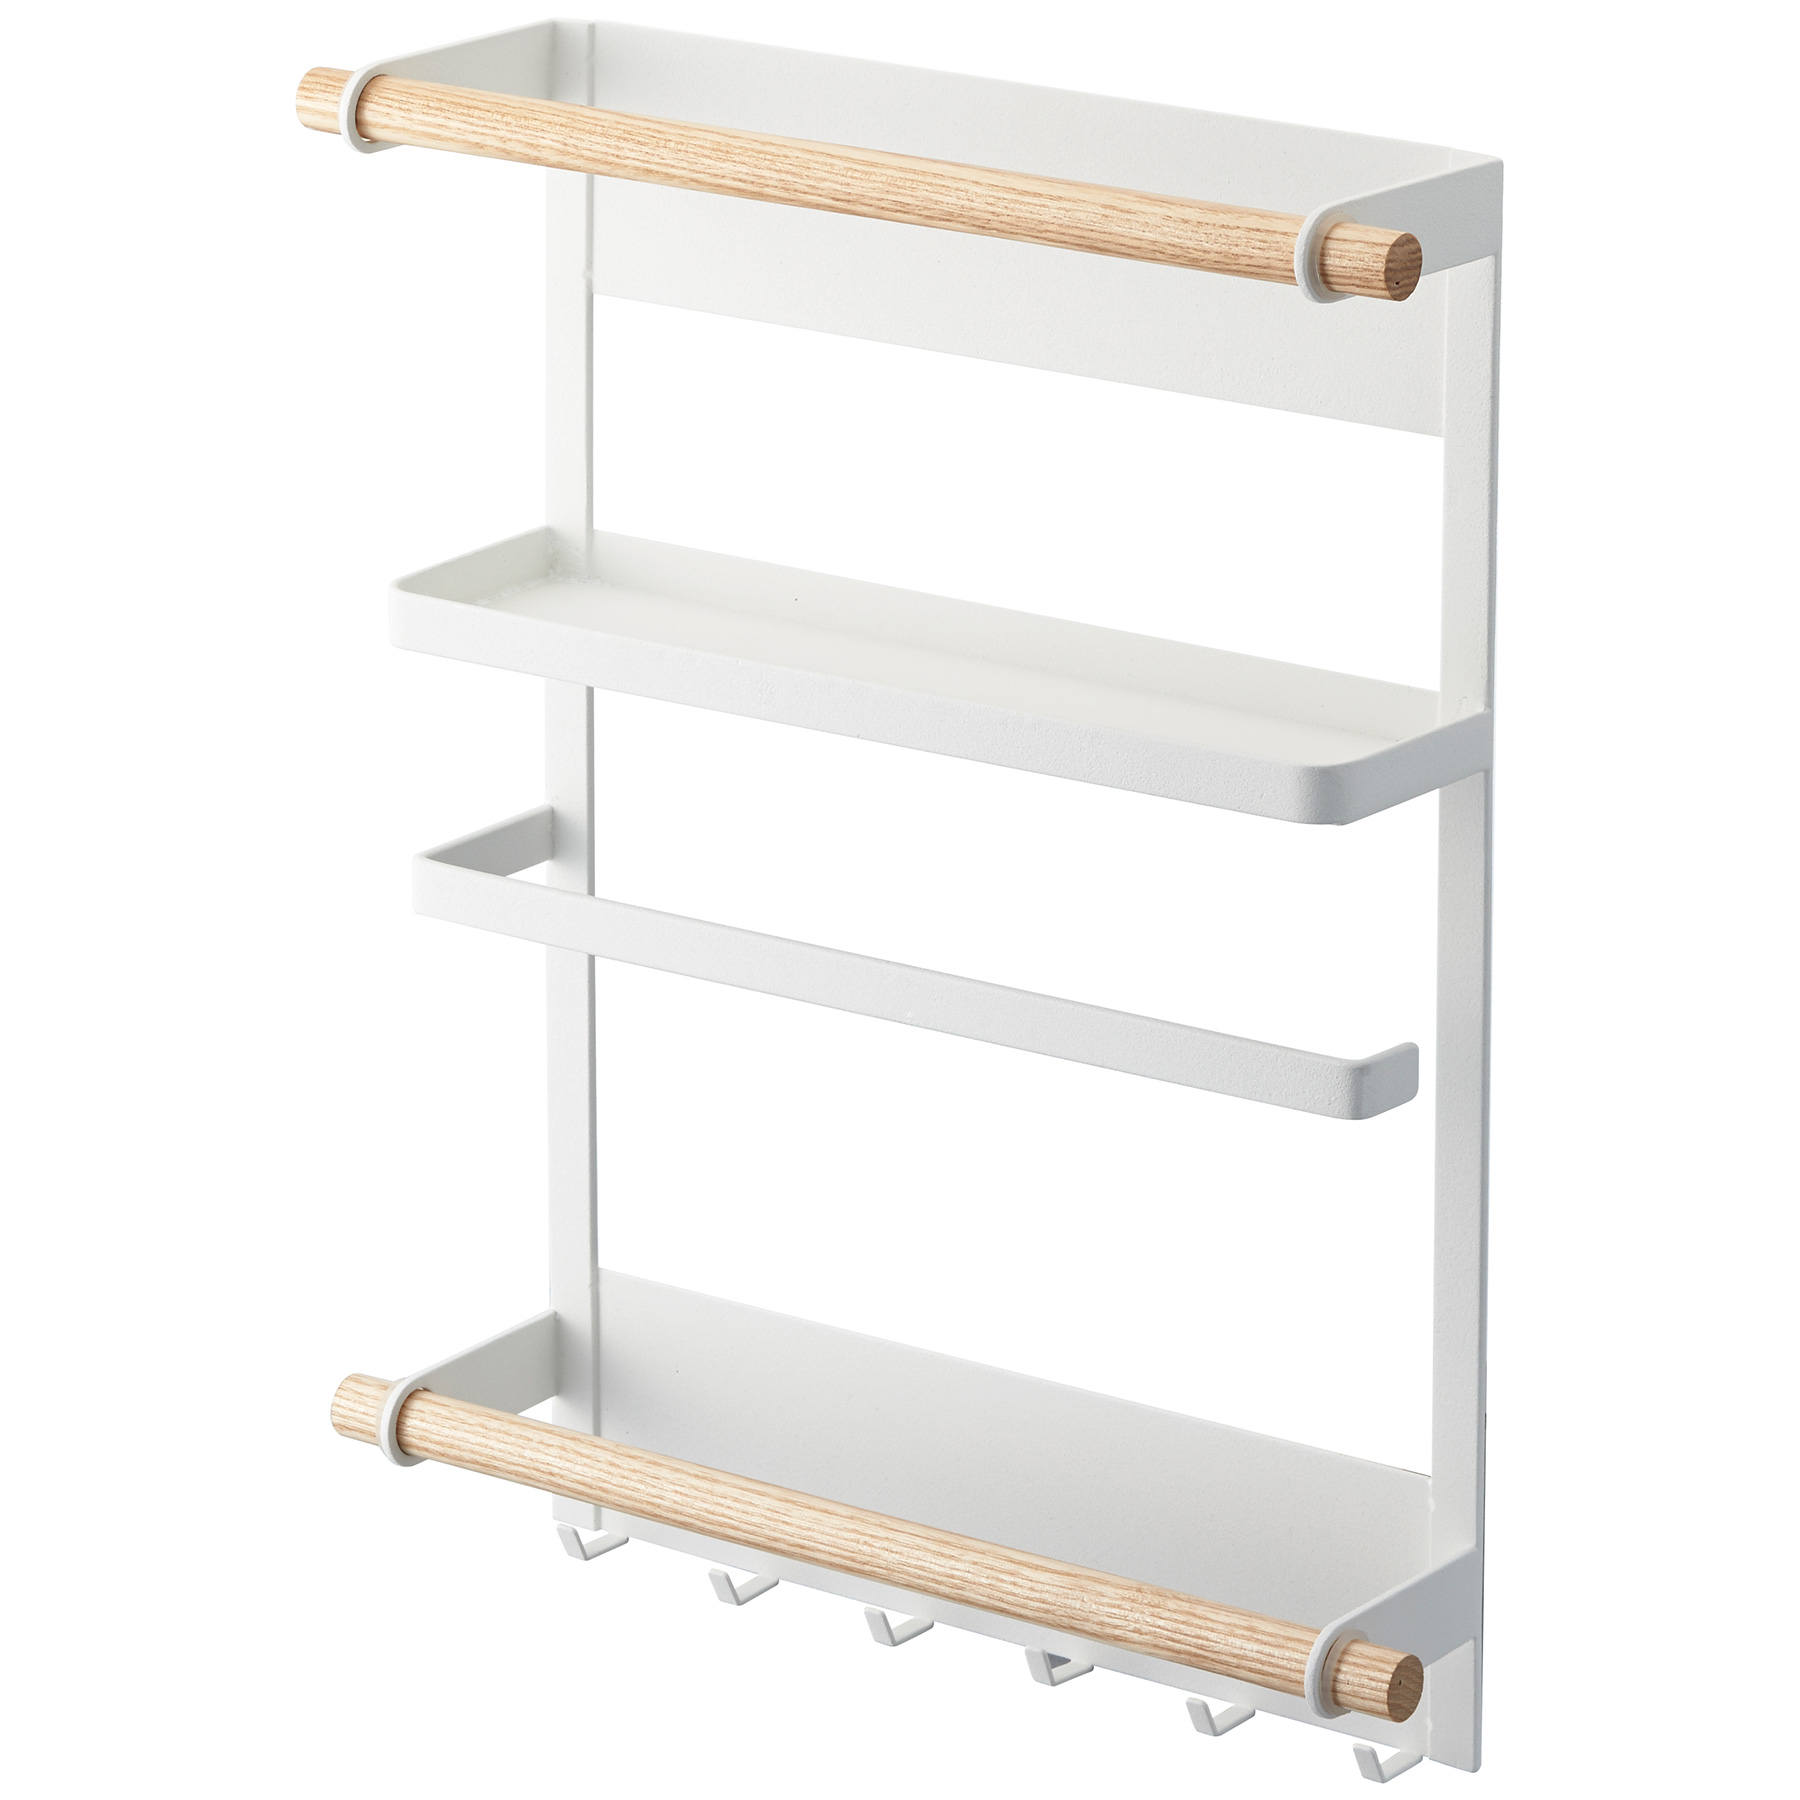 Tiny Home Interior Organizing Products: Magnetic Kitchen Storage Rack